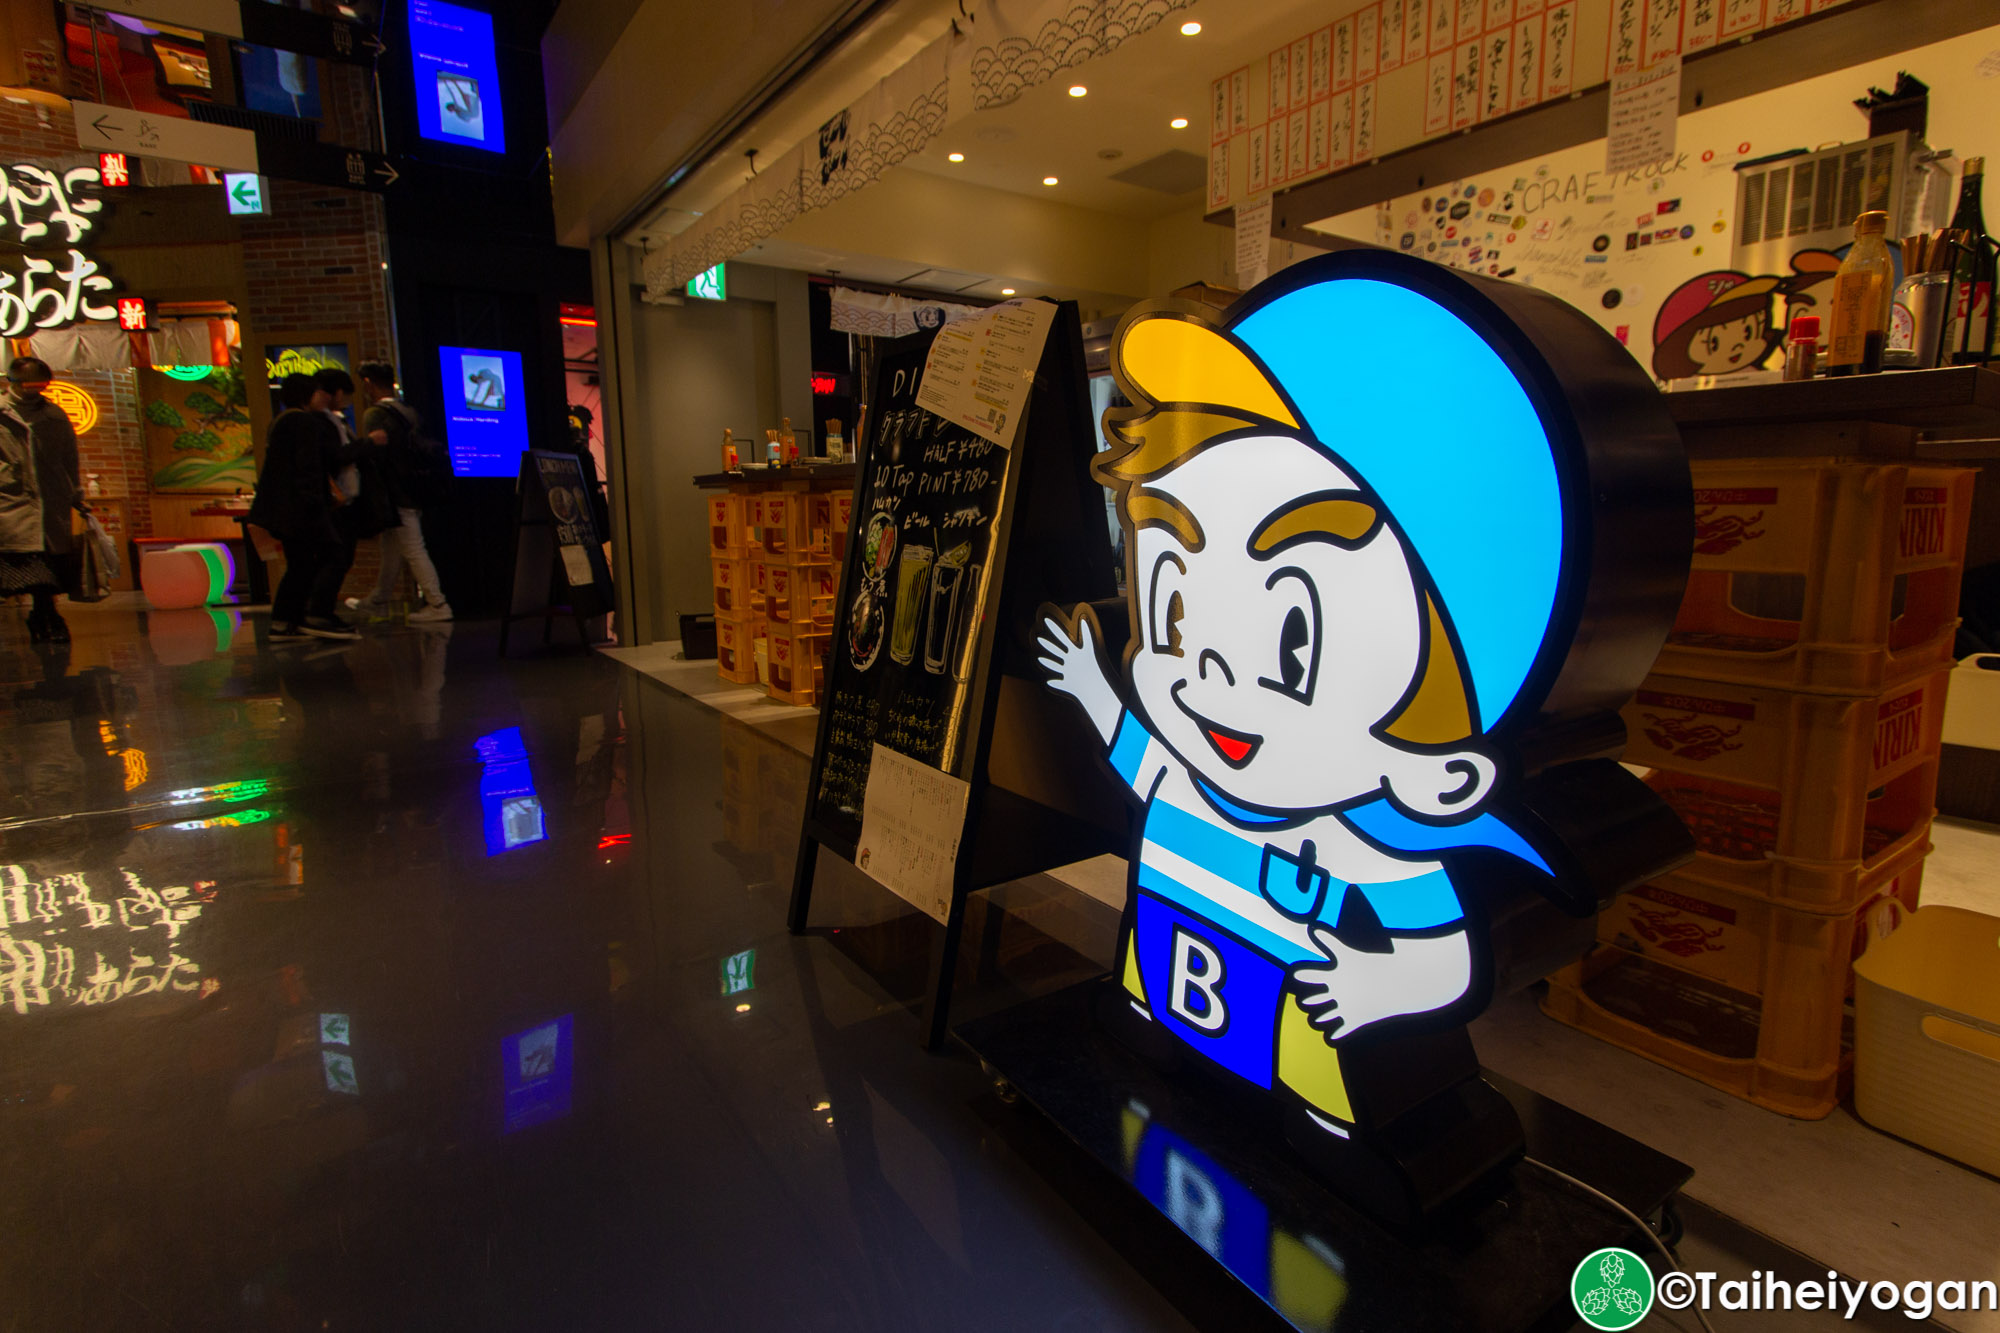 立ち飲みビールボーイ・Standing Bar Beer Boy (渋谷パルコ店・Shibuya Parco) - Entrance - Decorations